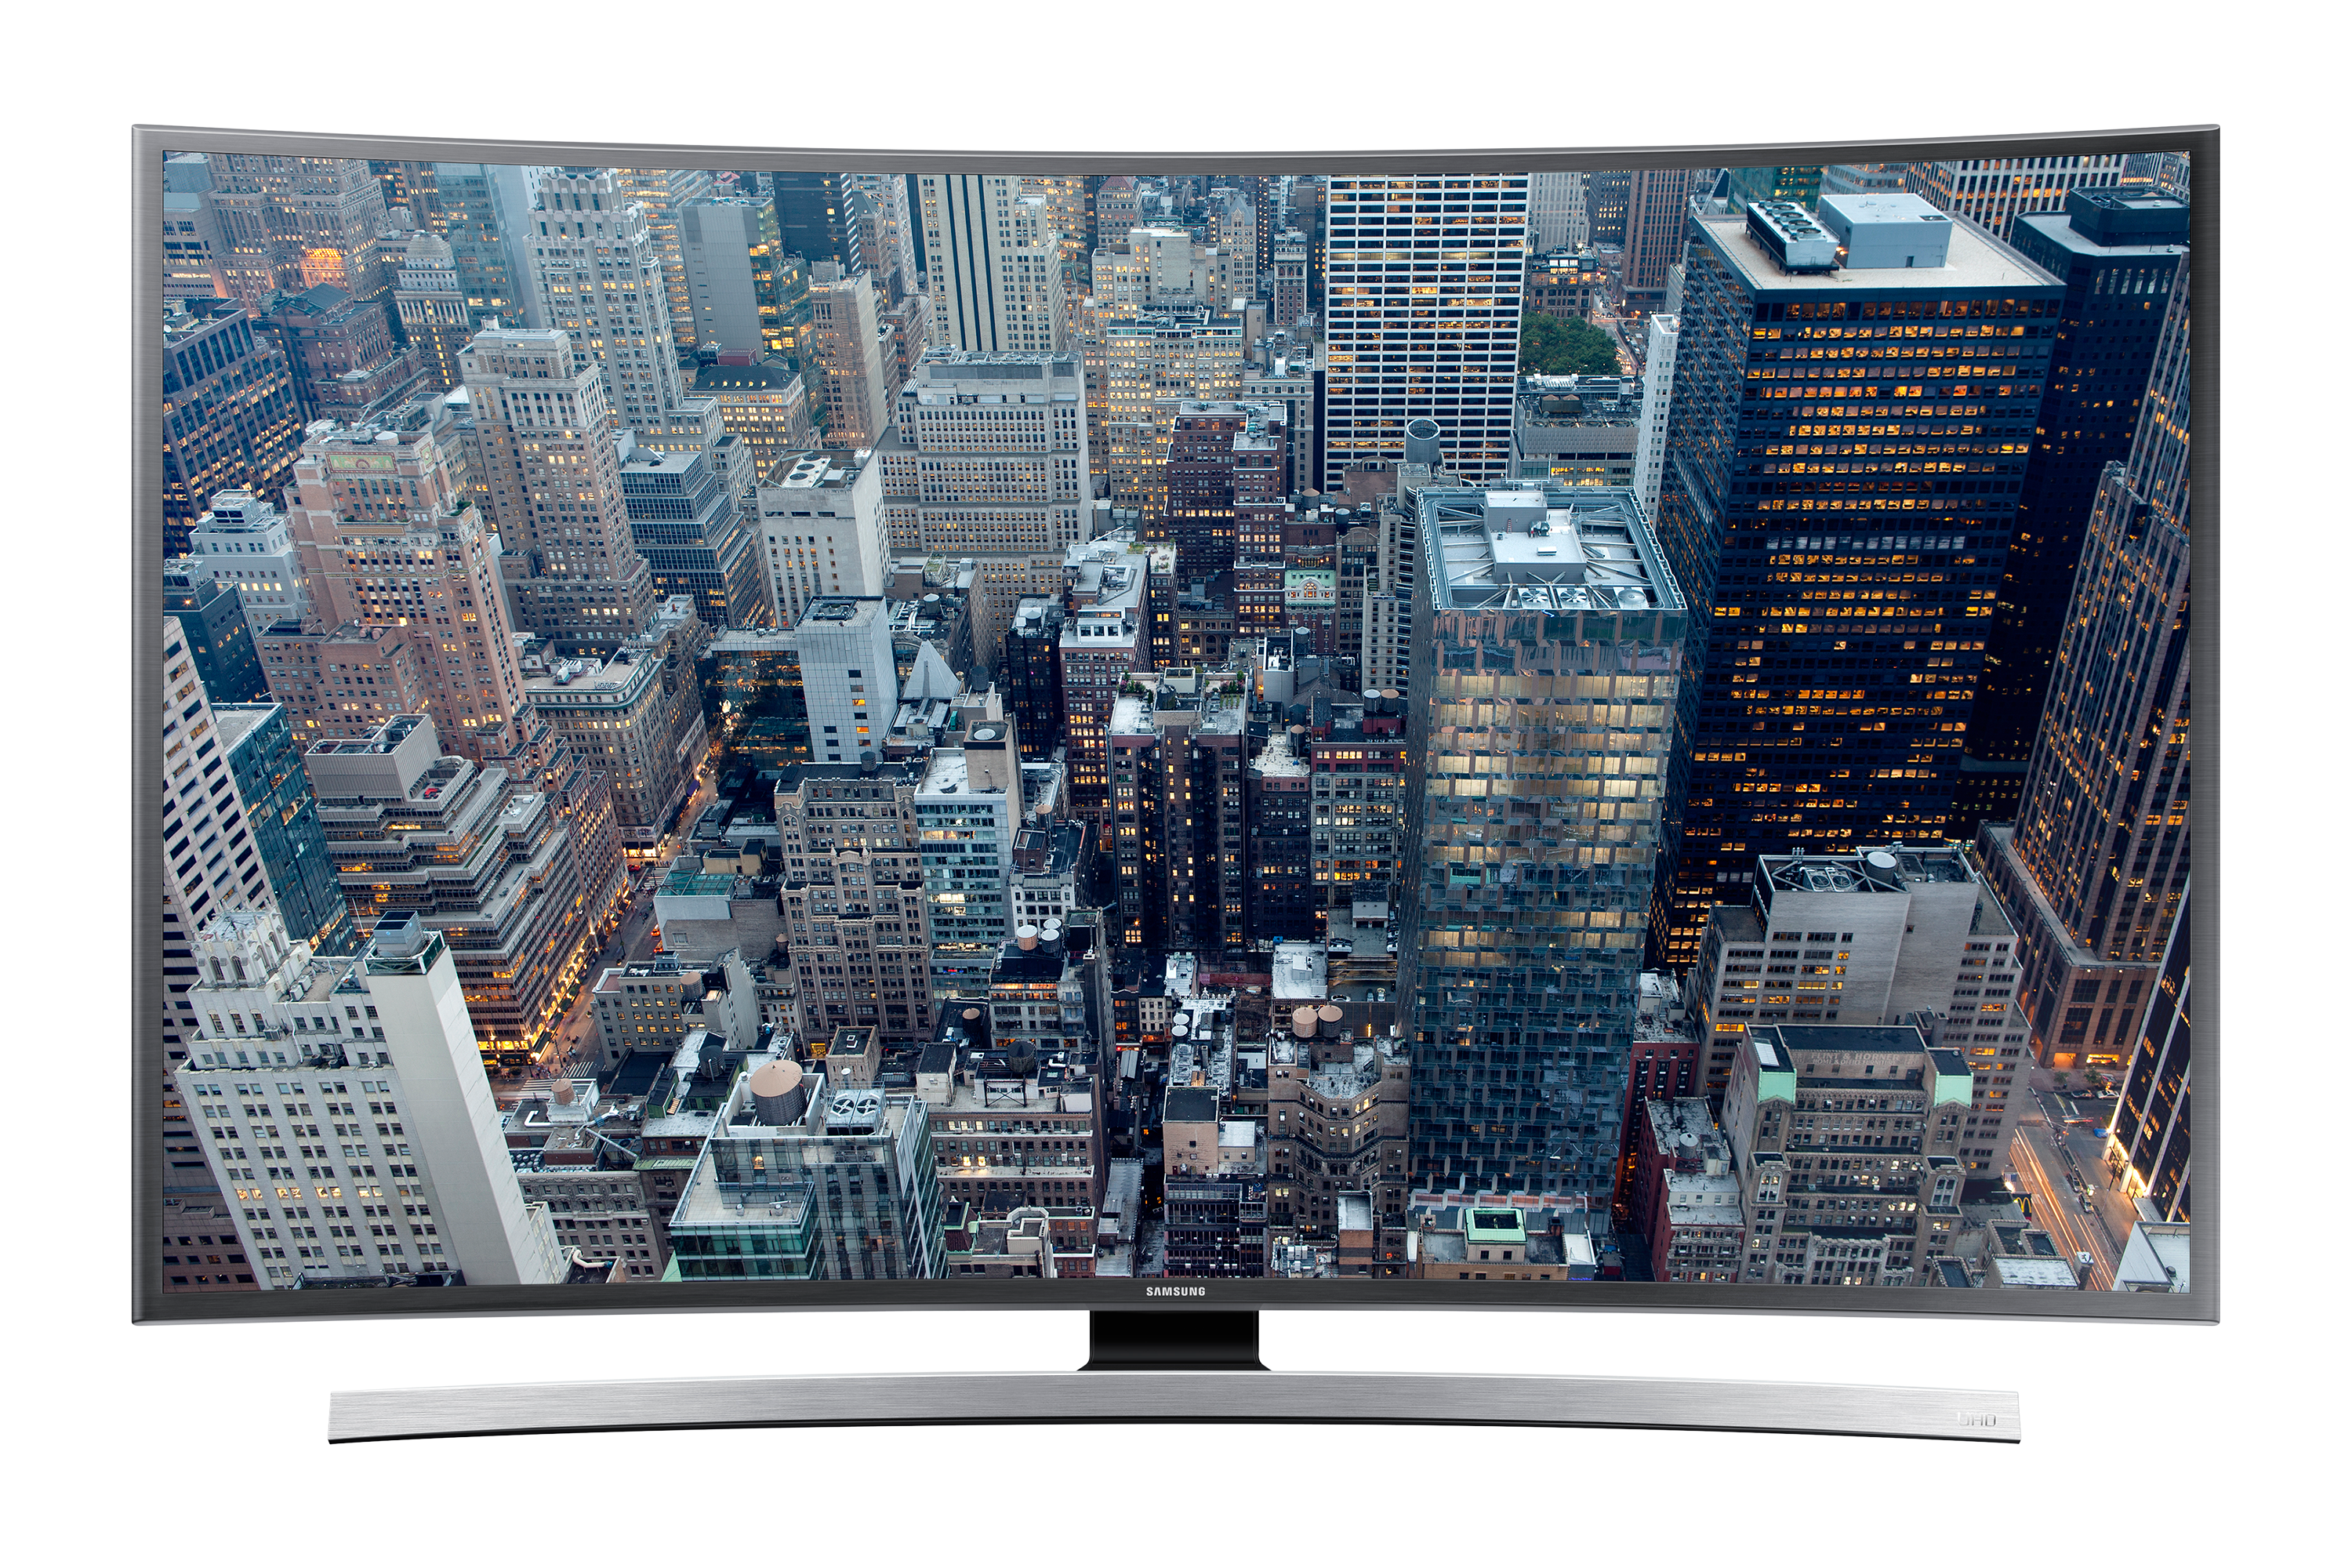 Series 6 55 inch JU6600 4K UHD LED TV*